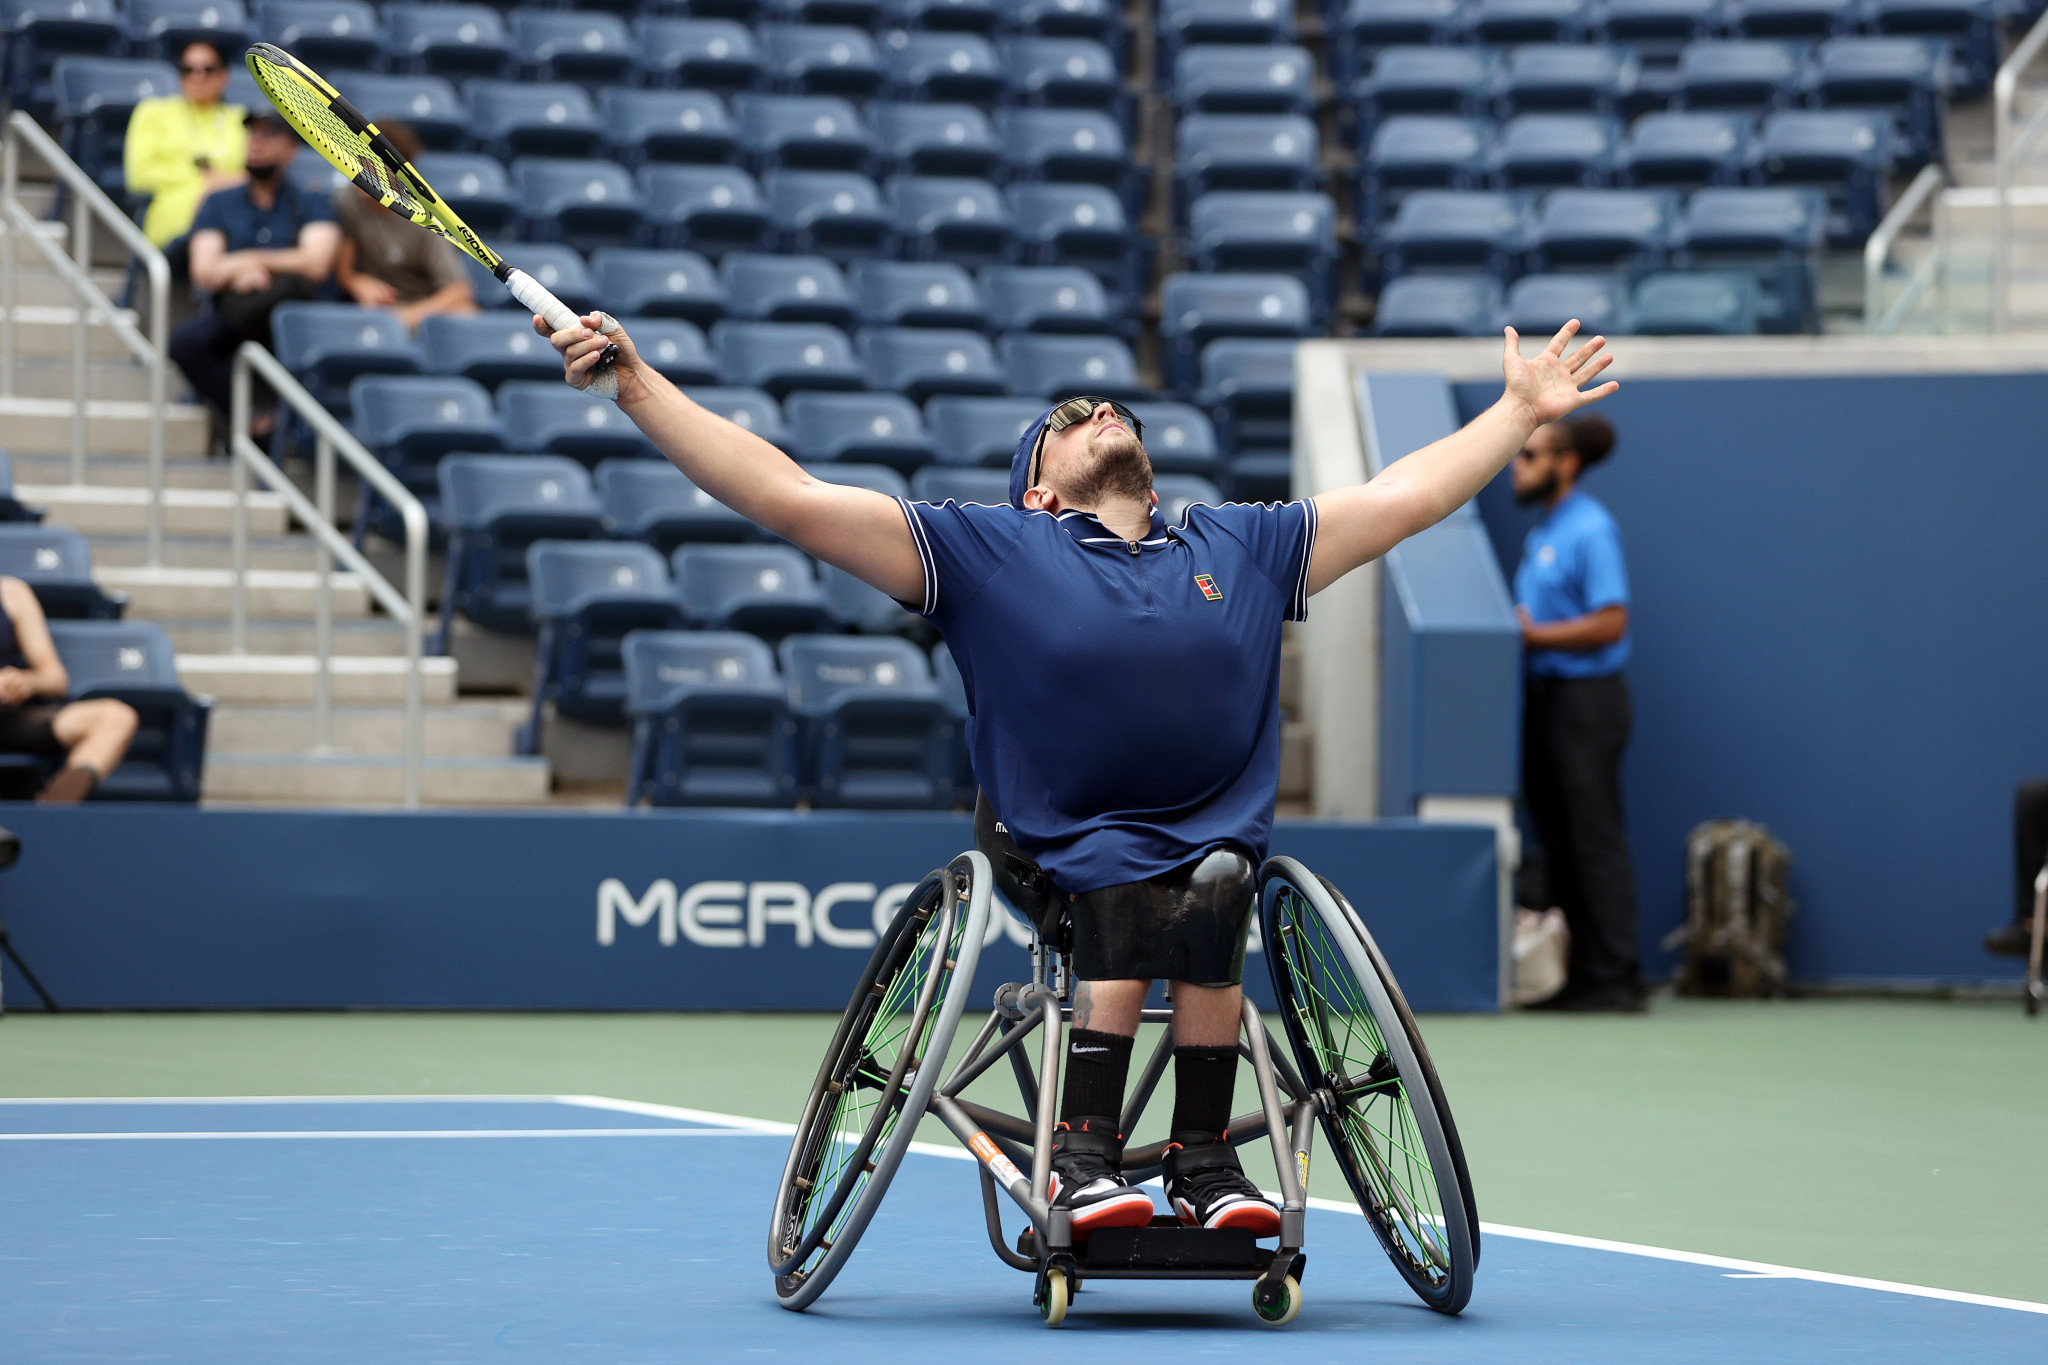 And in the quad singles, Australia's Dylan Alcott did the same - and won his third US Open singles title in the process ©Getty Images